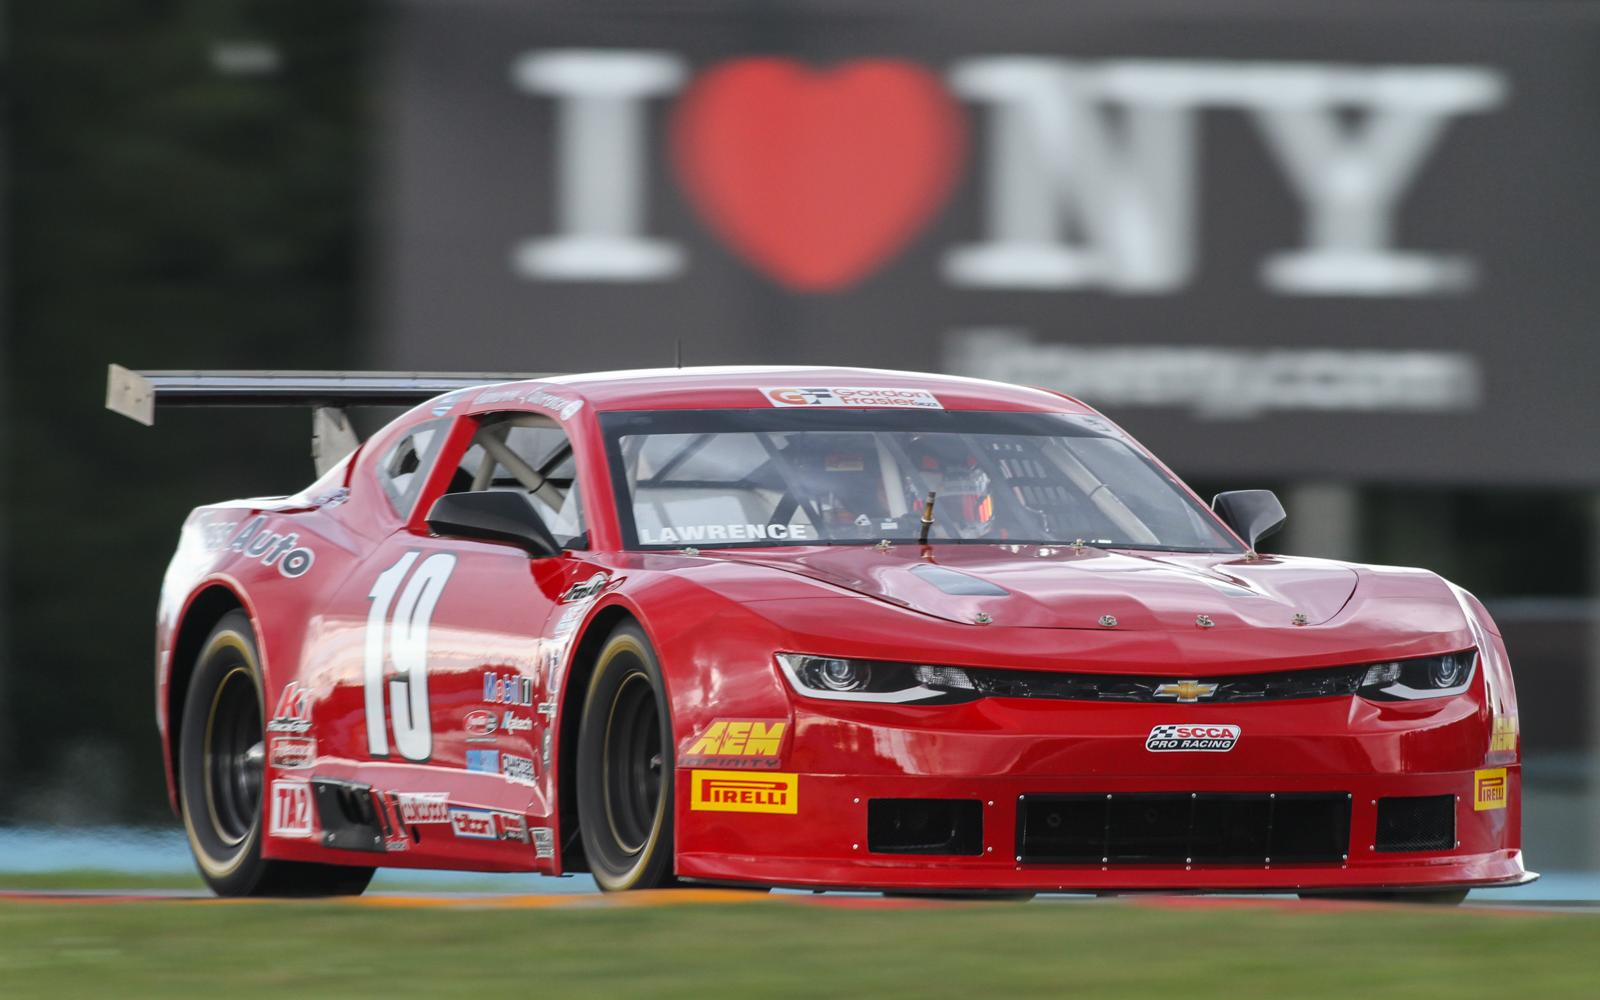 Cameron Lawrence leads TA2 in wet practice to open Watkins Glen weekend